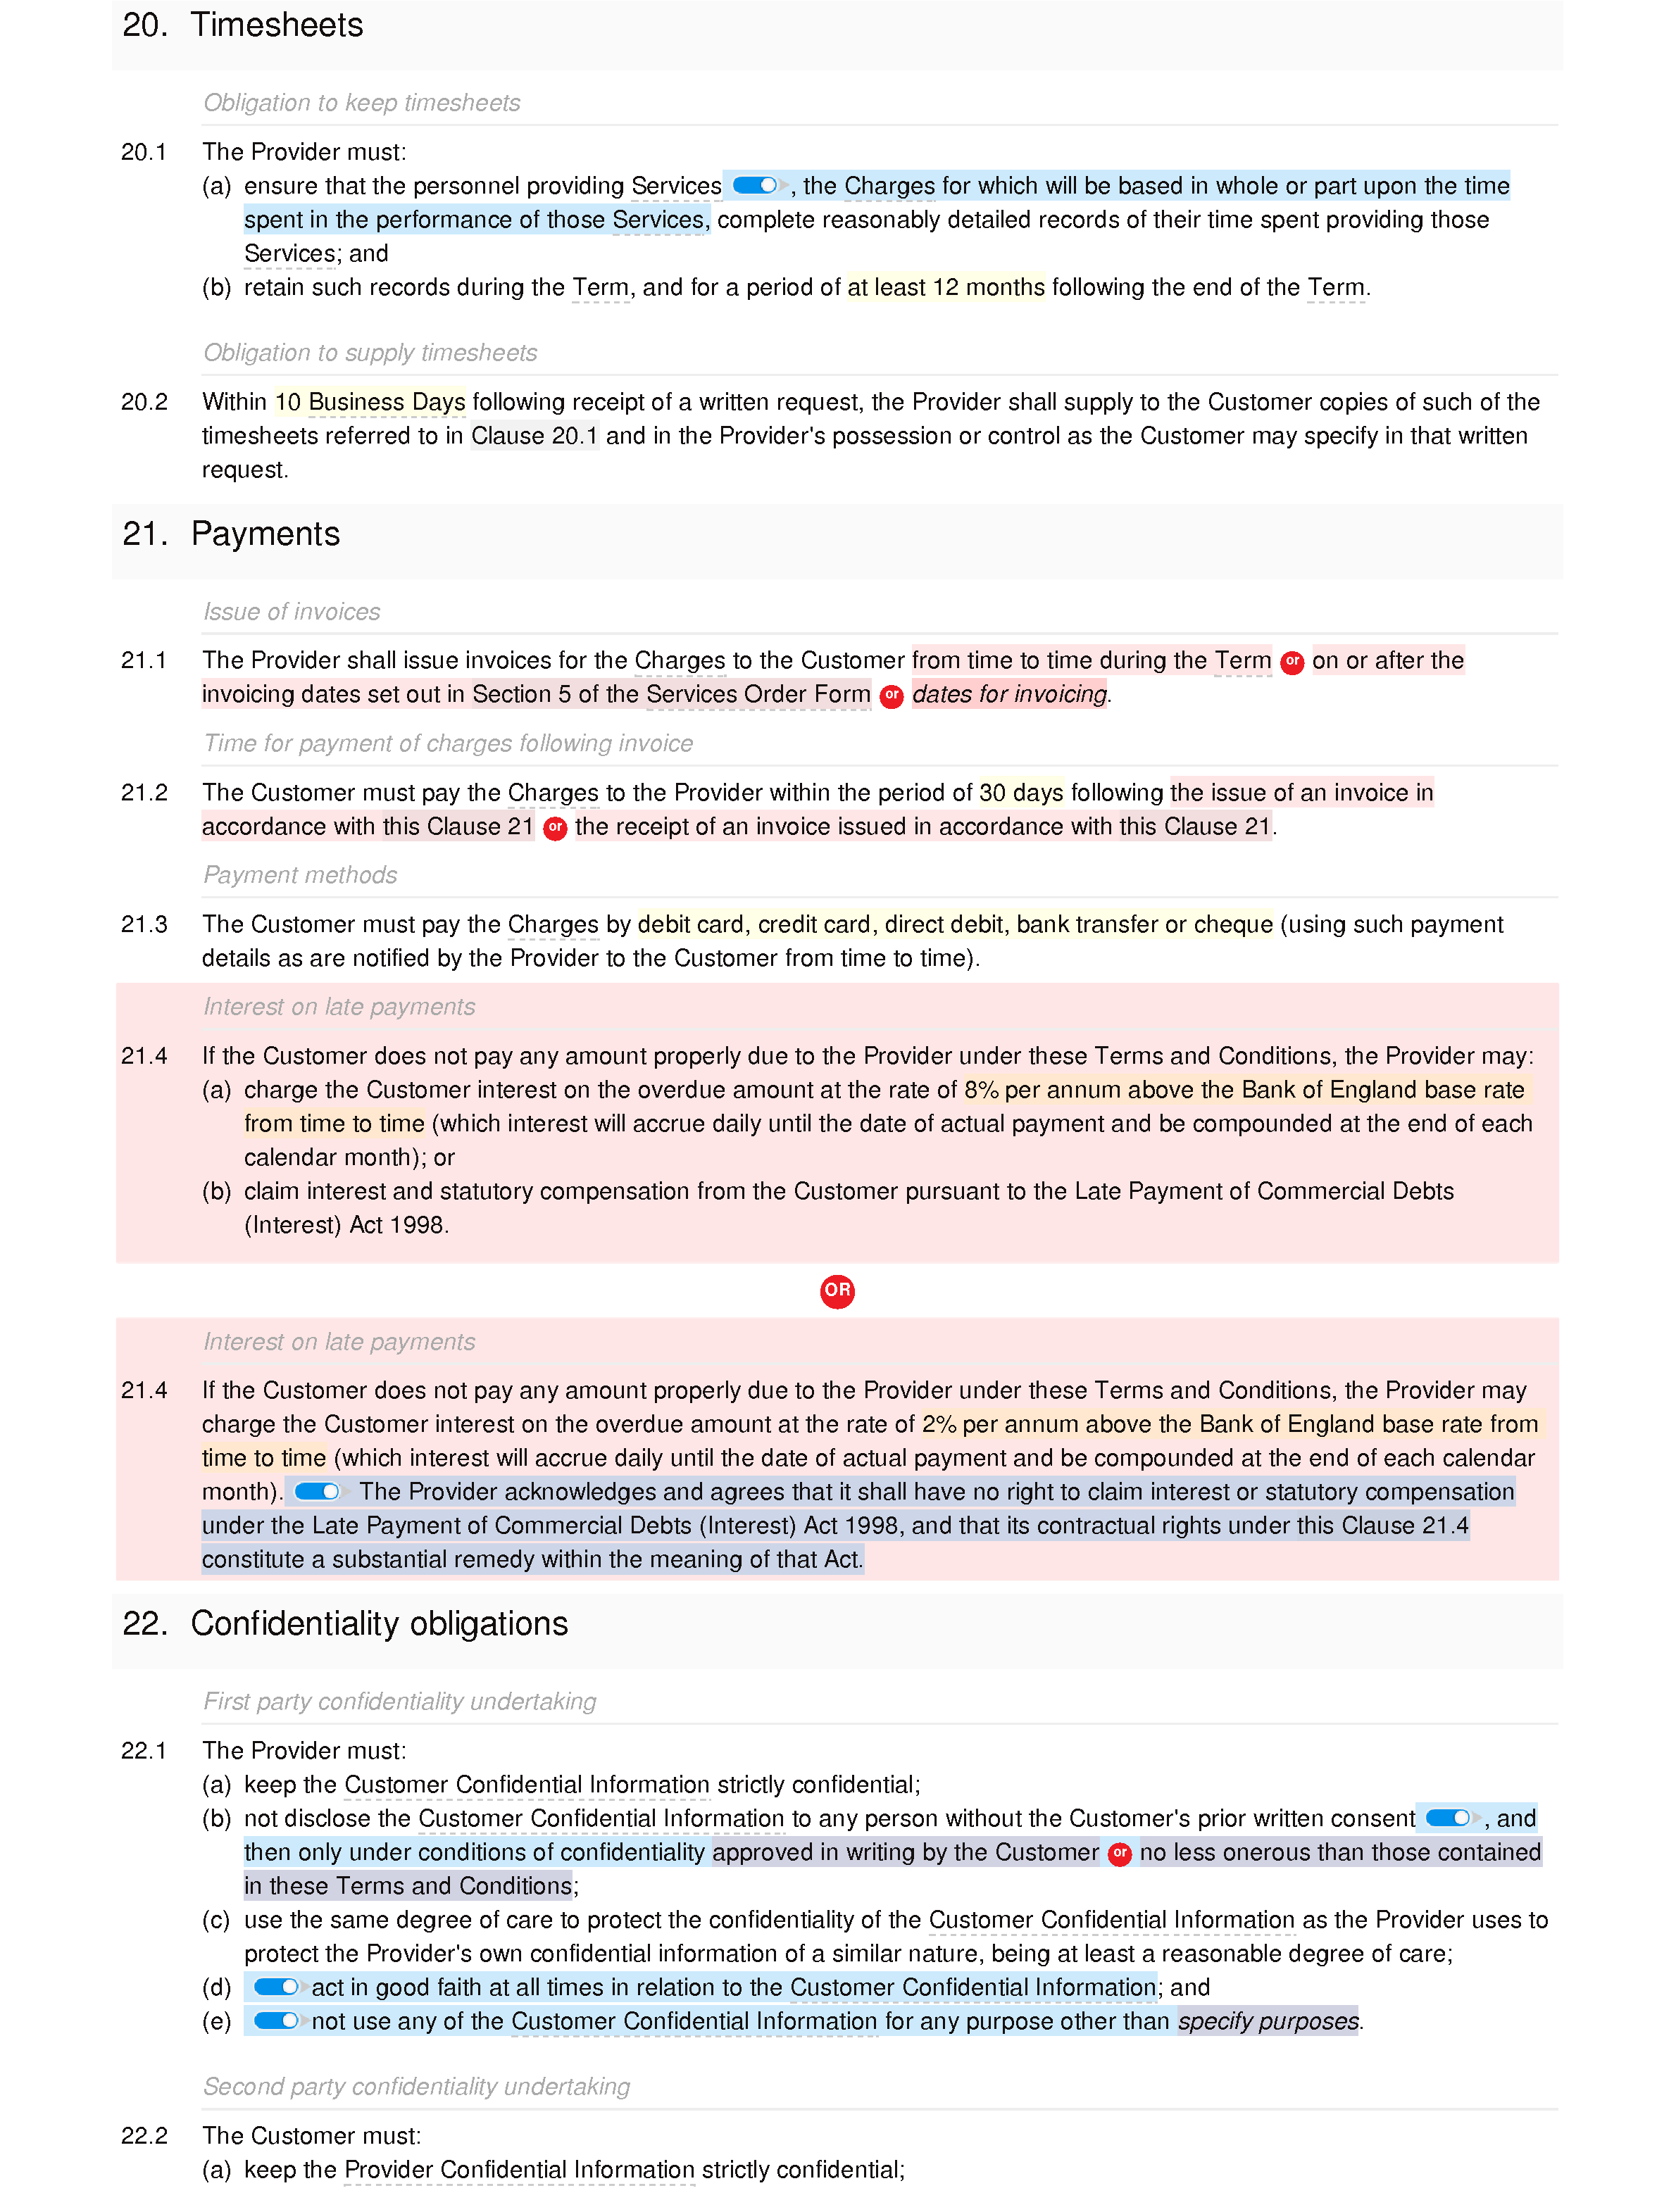 SaaS terms and conditions (premium) document editor preview